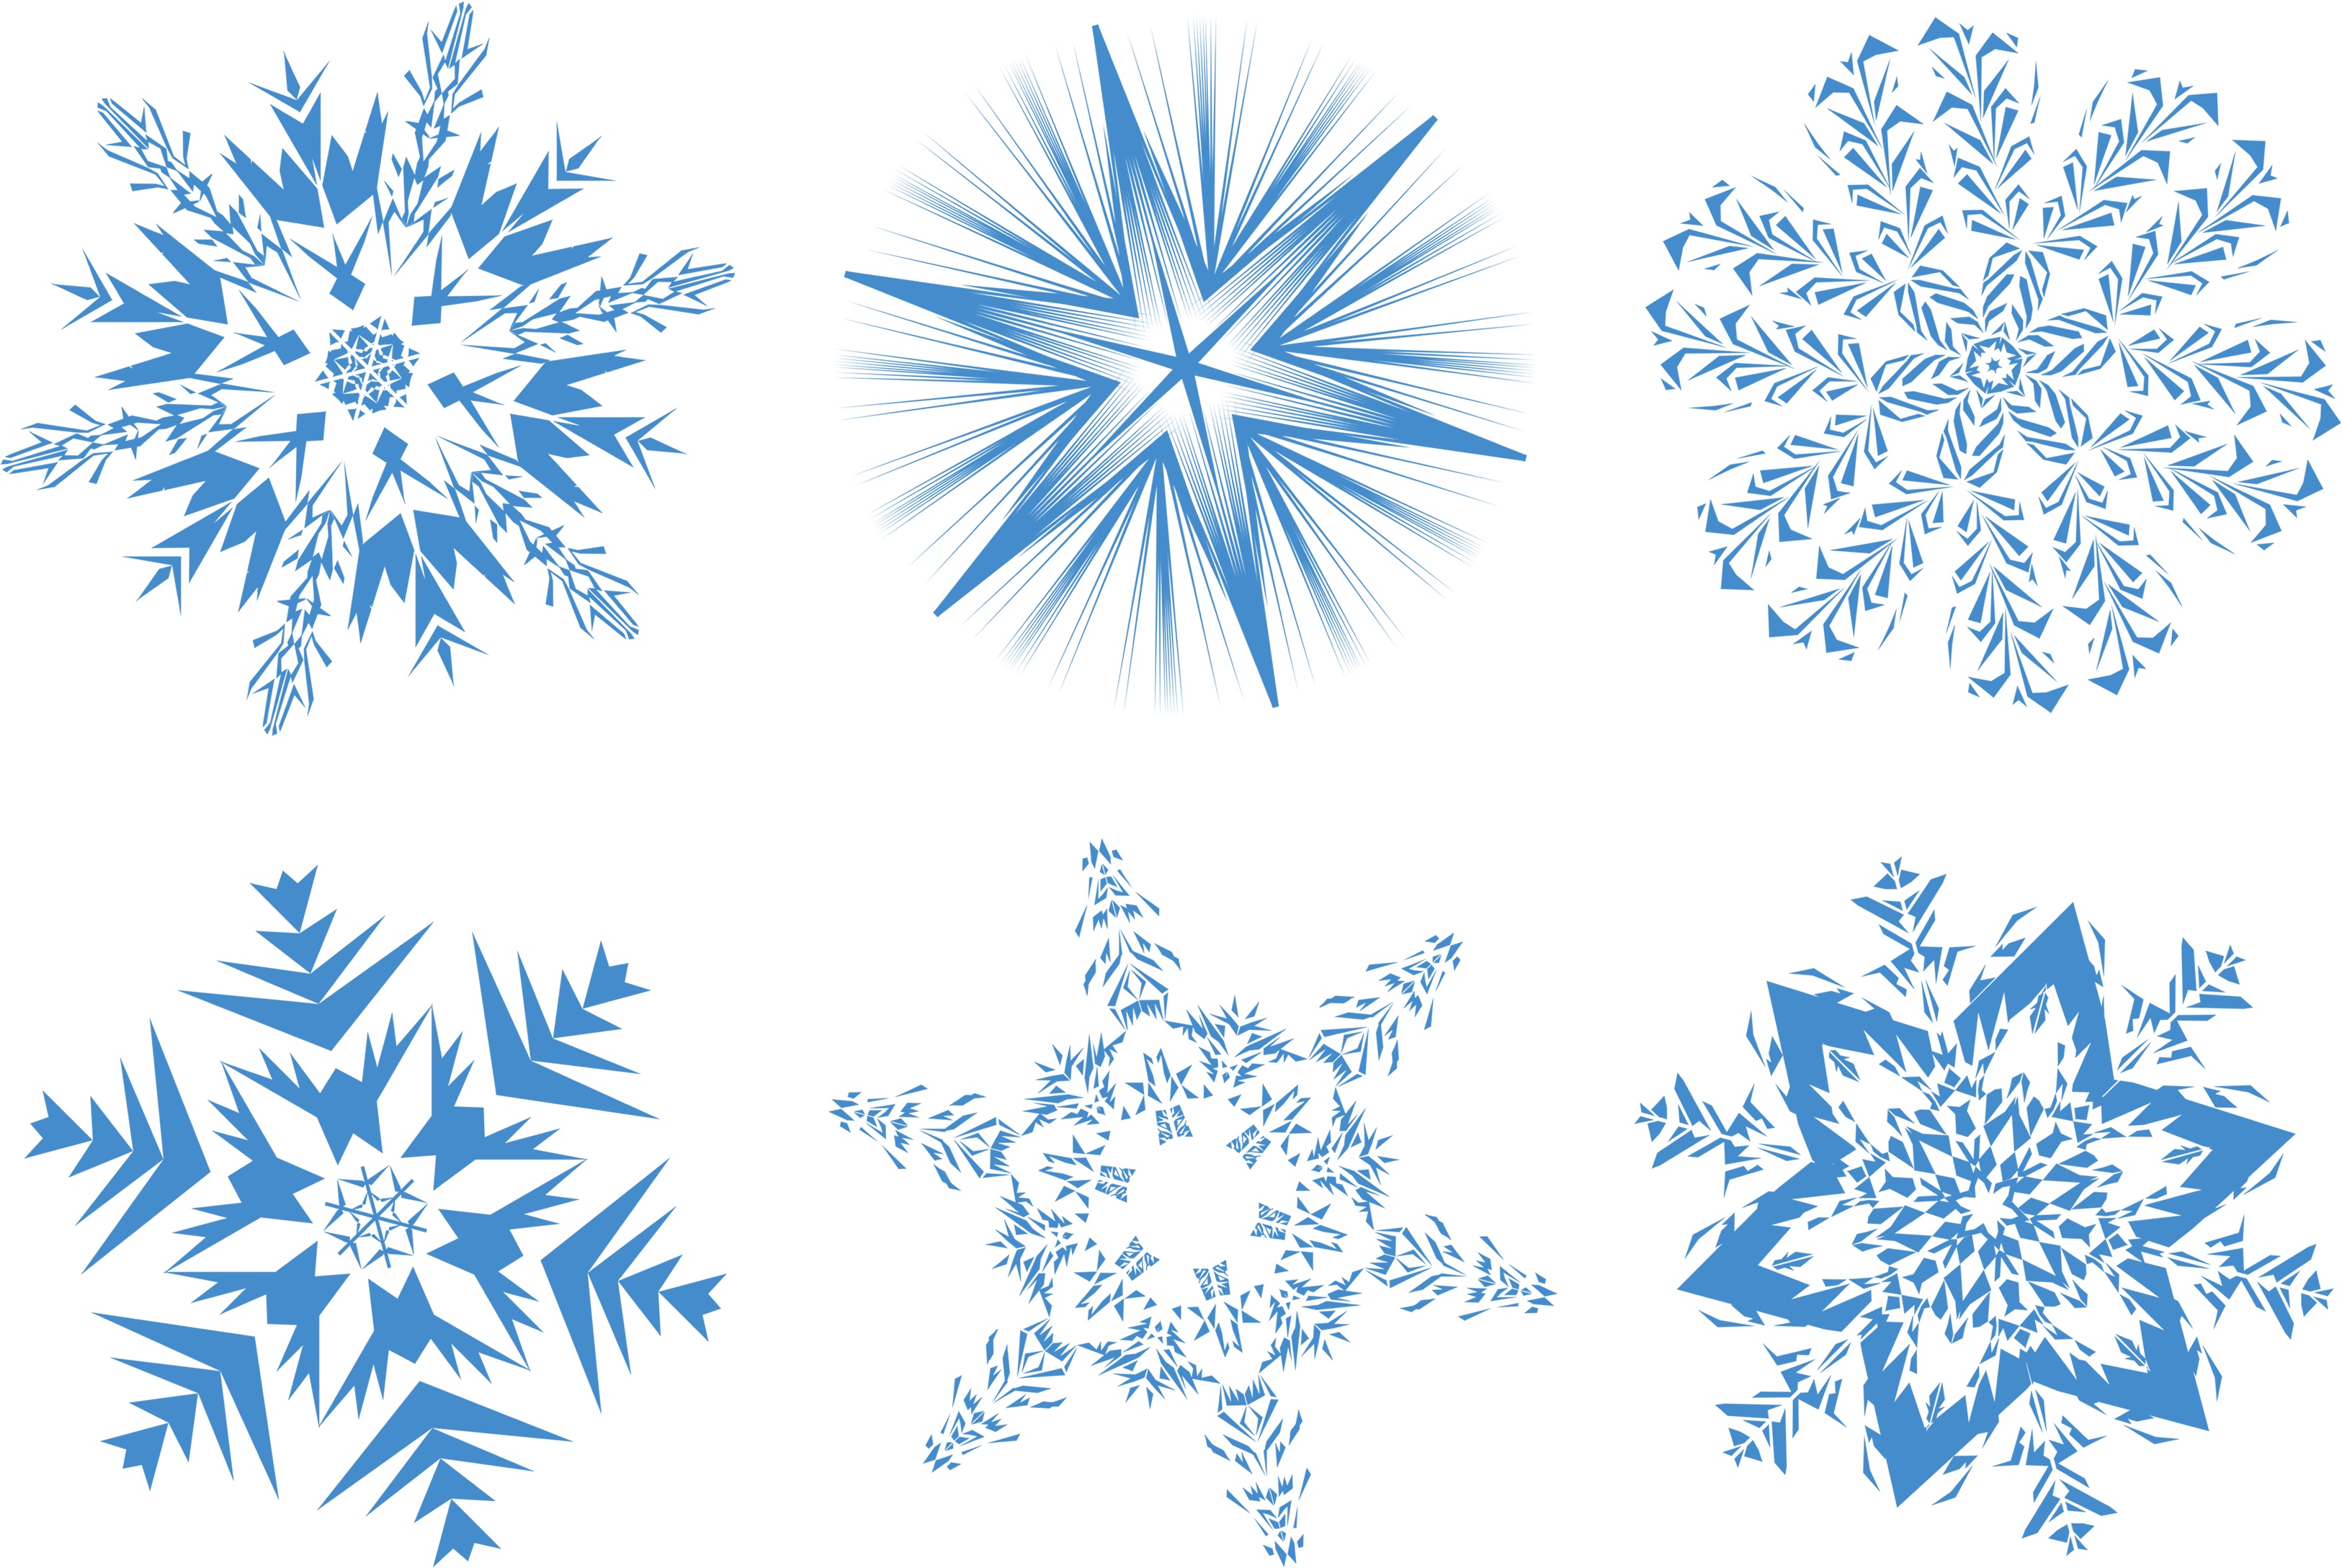 Snowflakes png high resolution. Images free download snowflake